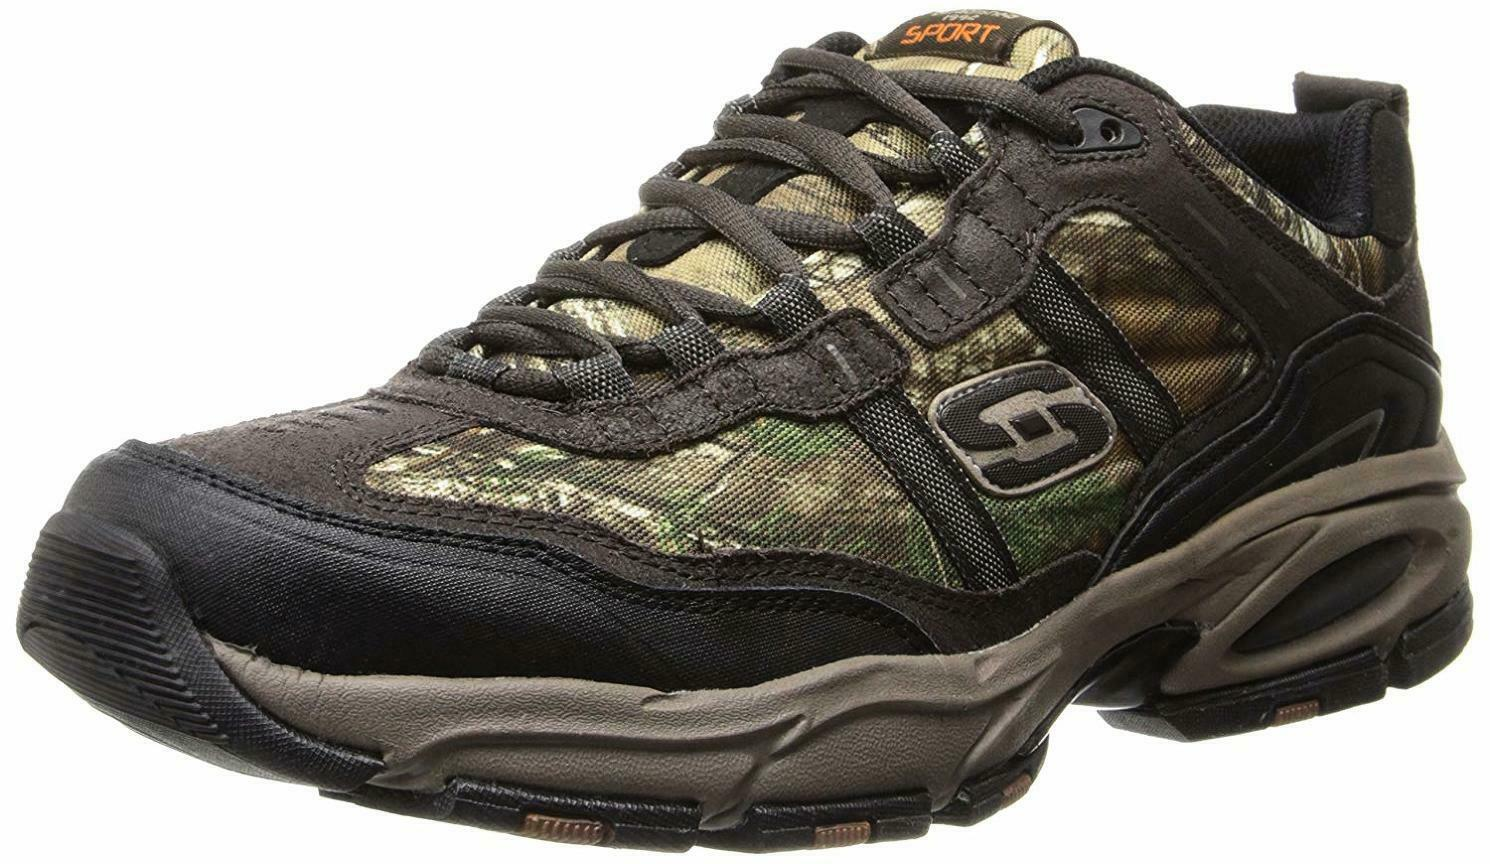 Skechers Sport Men's Vigor 2.0 Sneaker